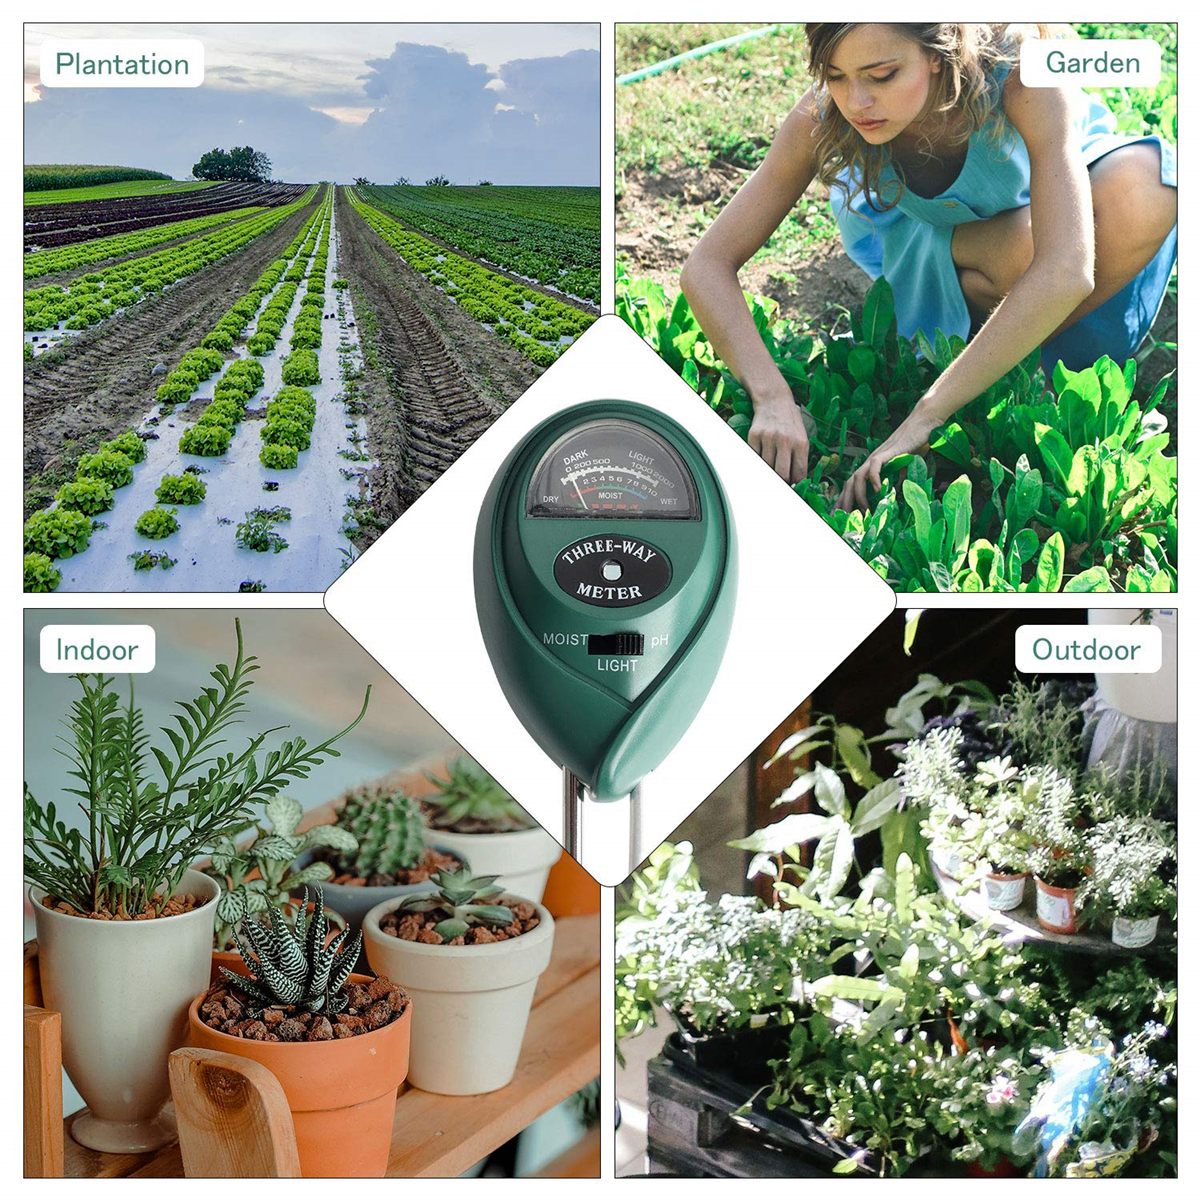 8 Pcs Mini Garden Transplanting Tools Set with 3-in-1 Soil Tester Moisture Kit for PH//Moisture//Light Gardening Hand Tool with Bonsai Tool for Home and Garden Lawn Farm Indoor Outdoor Plants Care